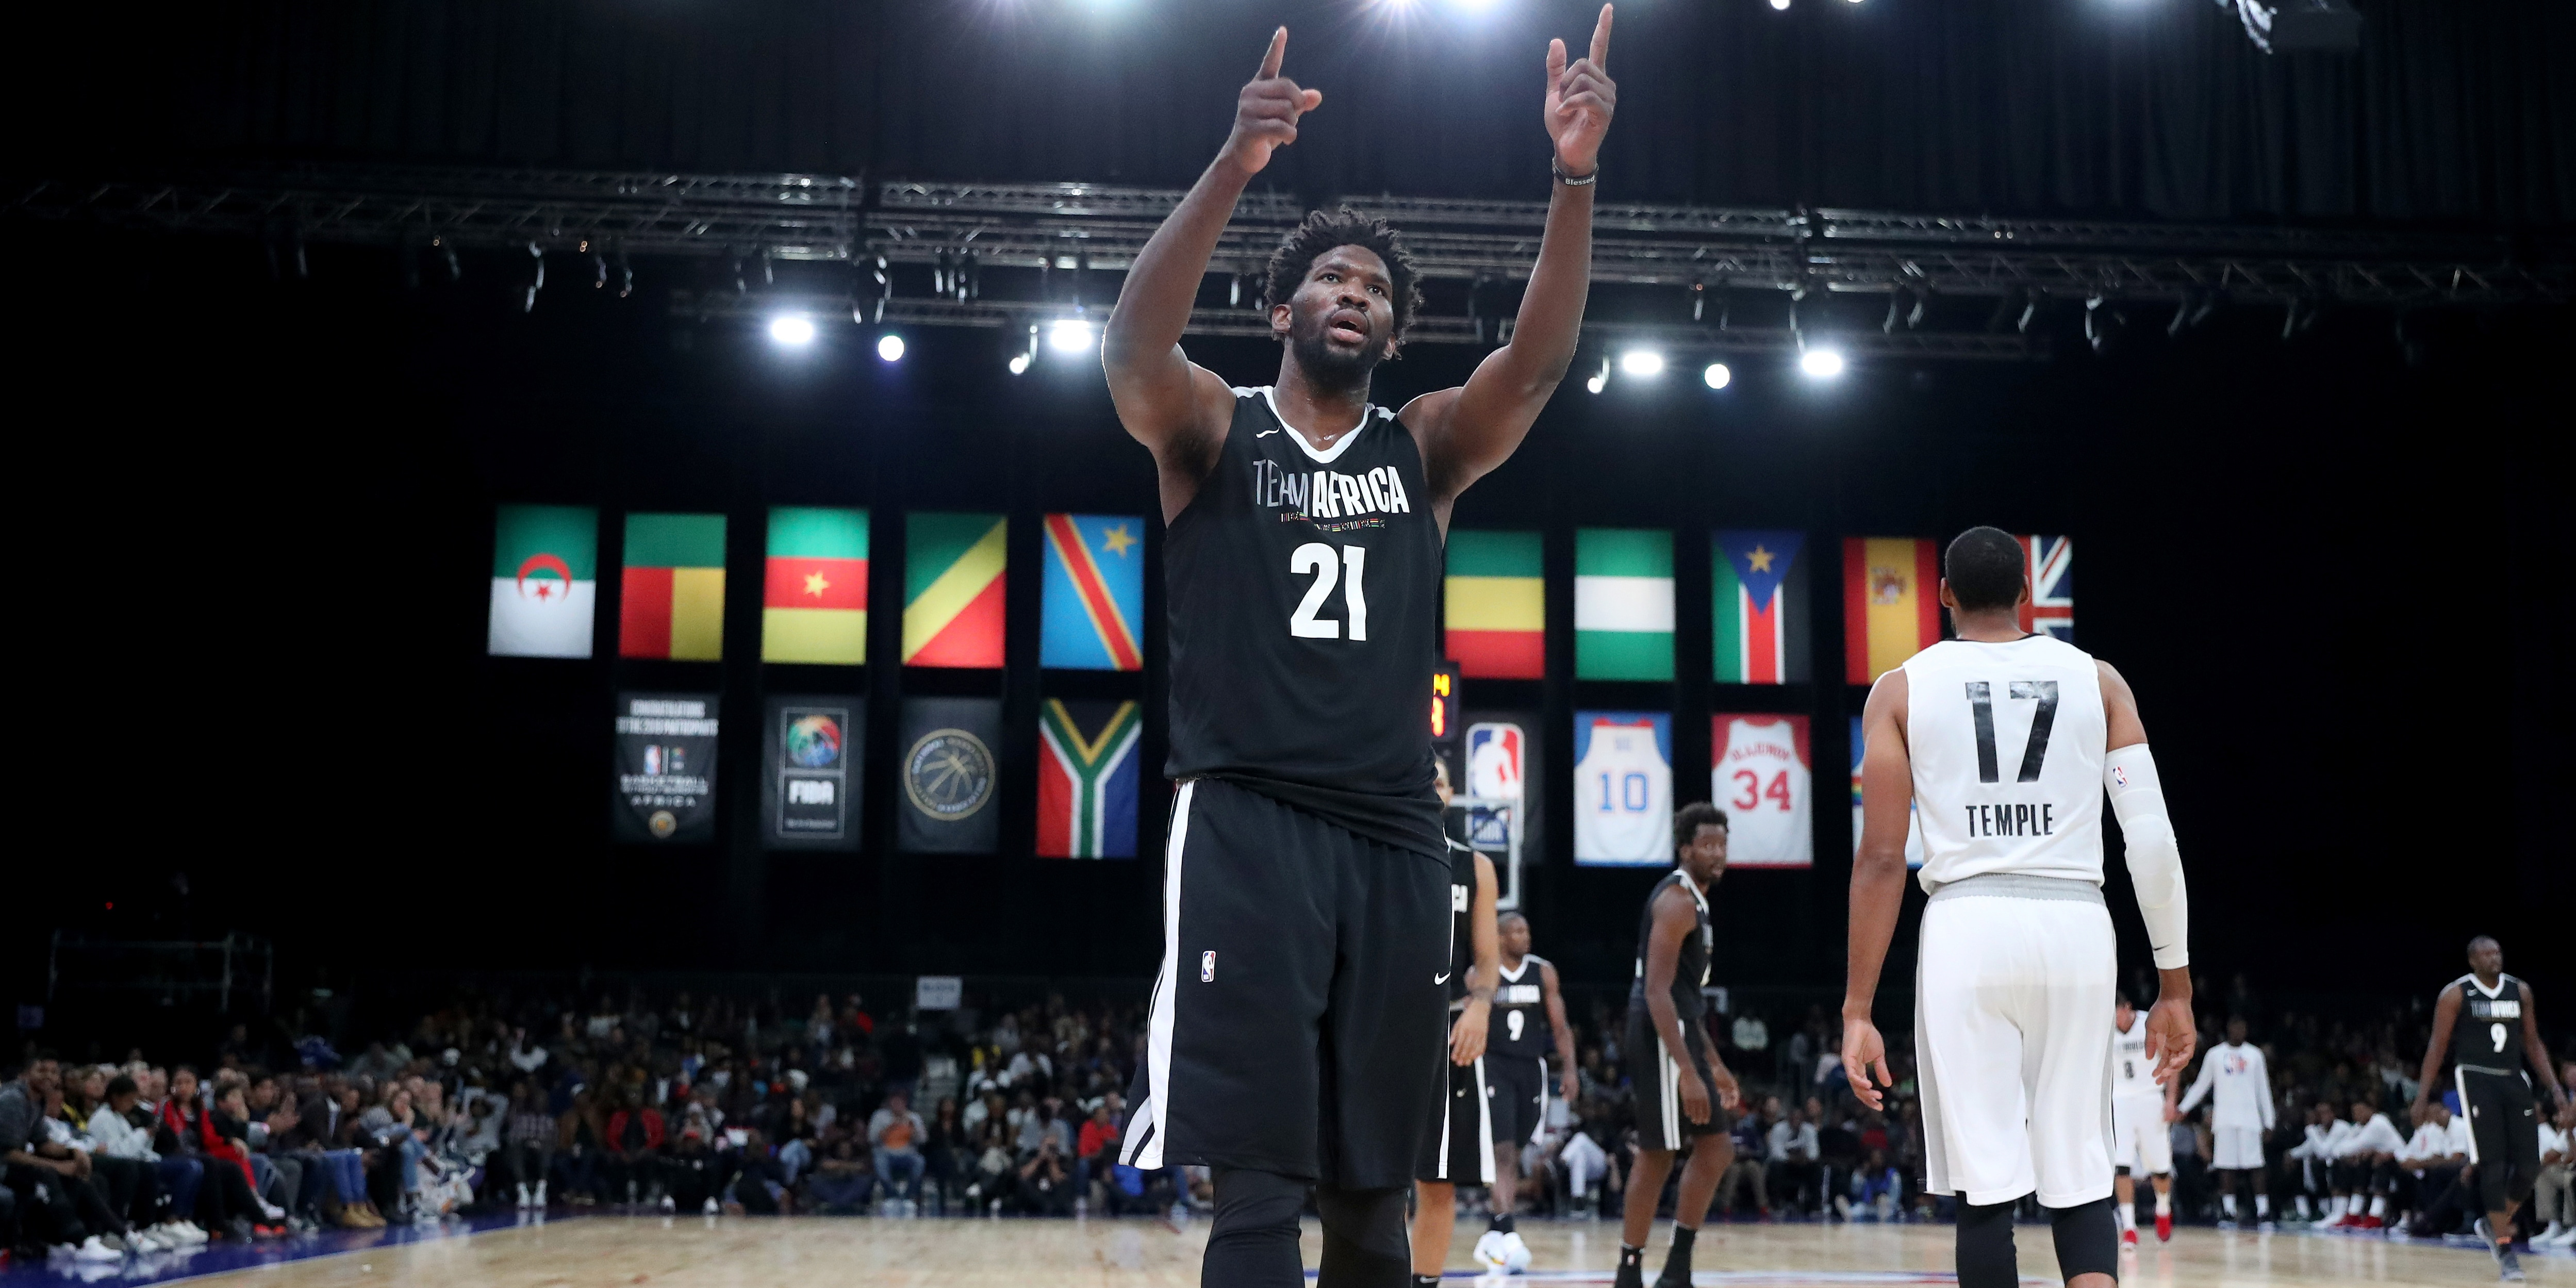 Big Ovation Big Day for Embiid in NBA Africa Game 2018